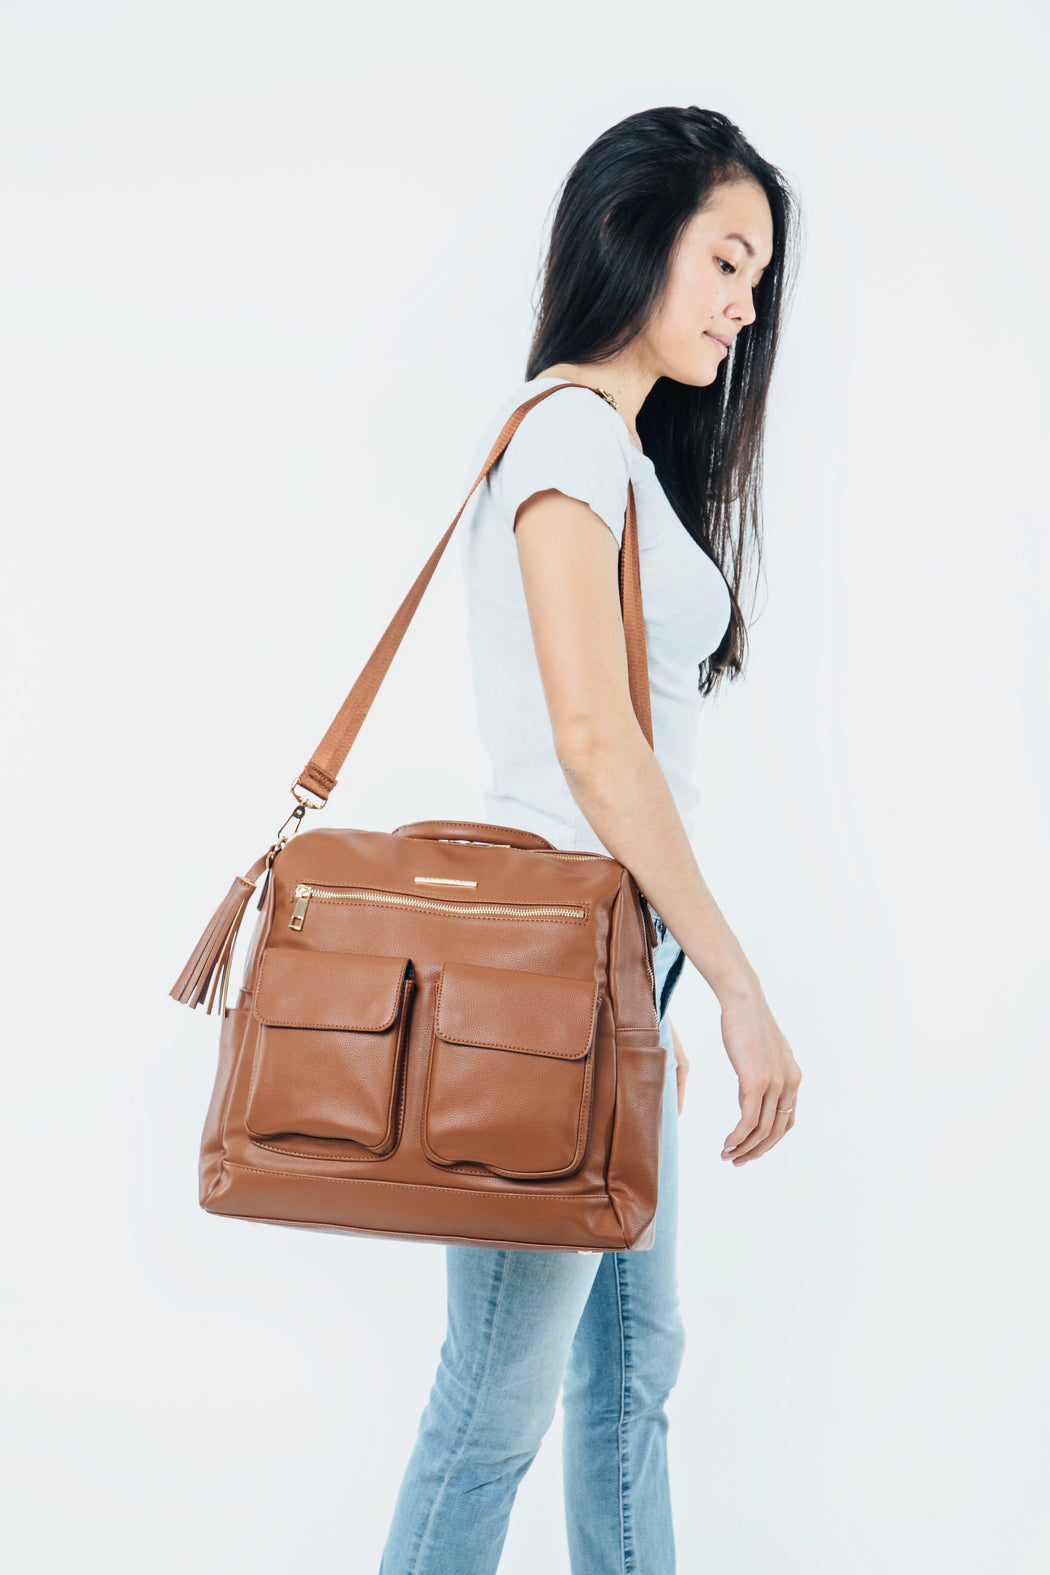 A Cute Diaper Bag - Ella Dane Caramel - Ella Dane